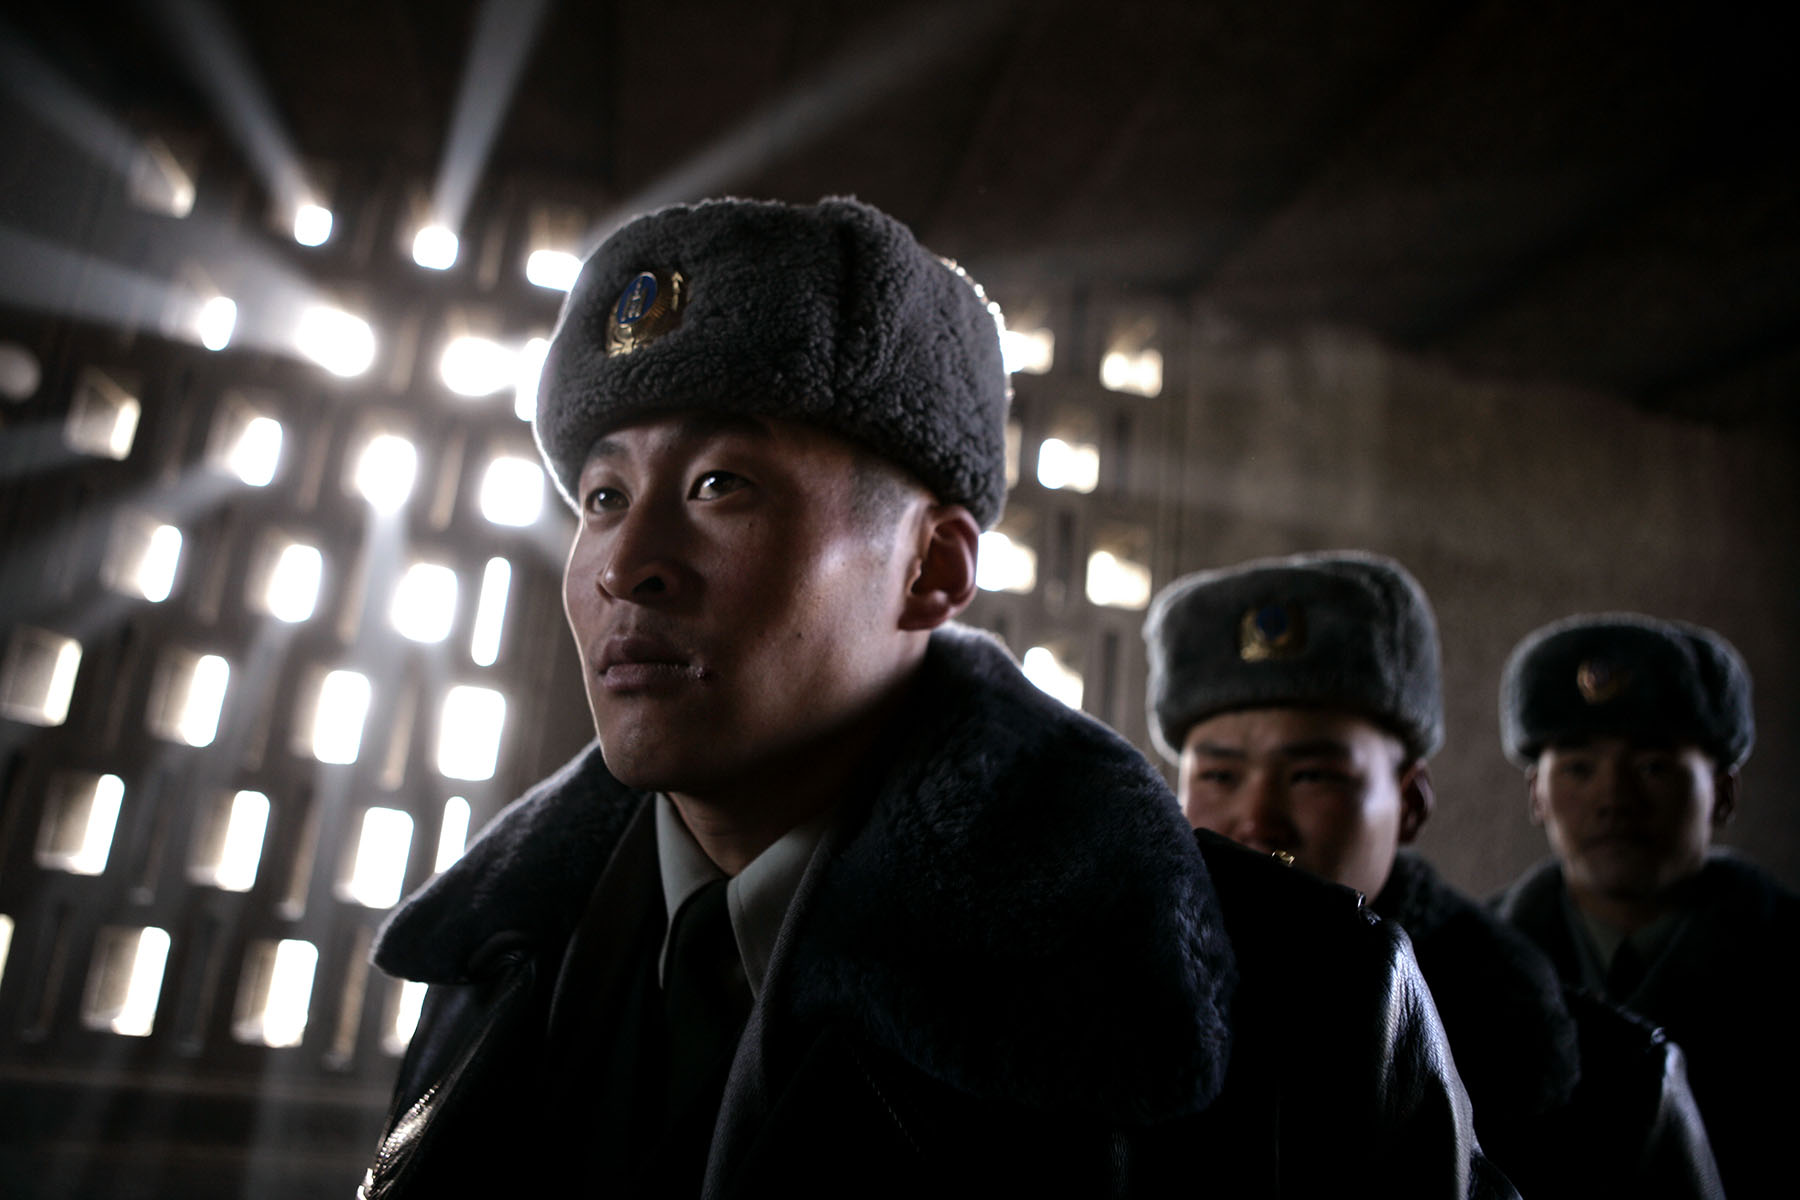 Soldiers from the Mongolian Army wait outside the Government House for the arrival of U.S. President George W. Bush's, Monday, Nov. 21, 2005 in Ulan Bator, Mongolia.Photo by Brooks Kraft/Corbis